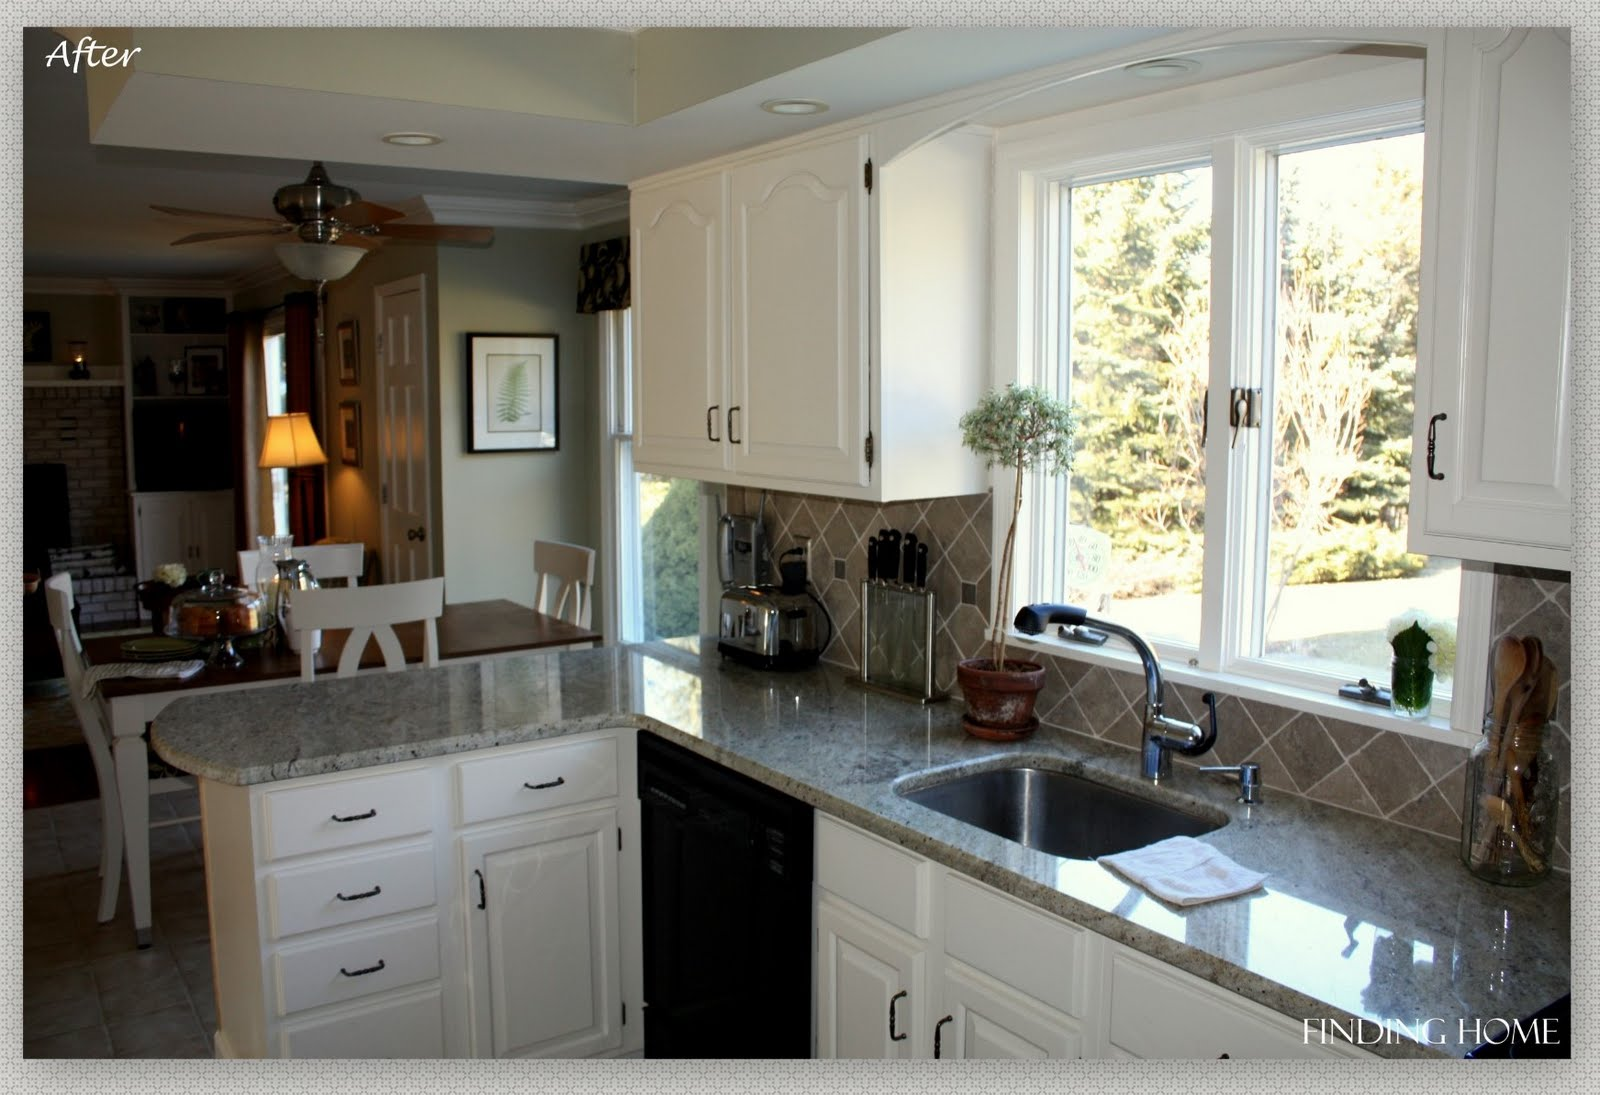 Remodelaholic | From Oak to Beautiful White Kitchen Cabinets